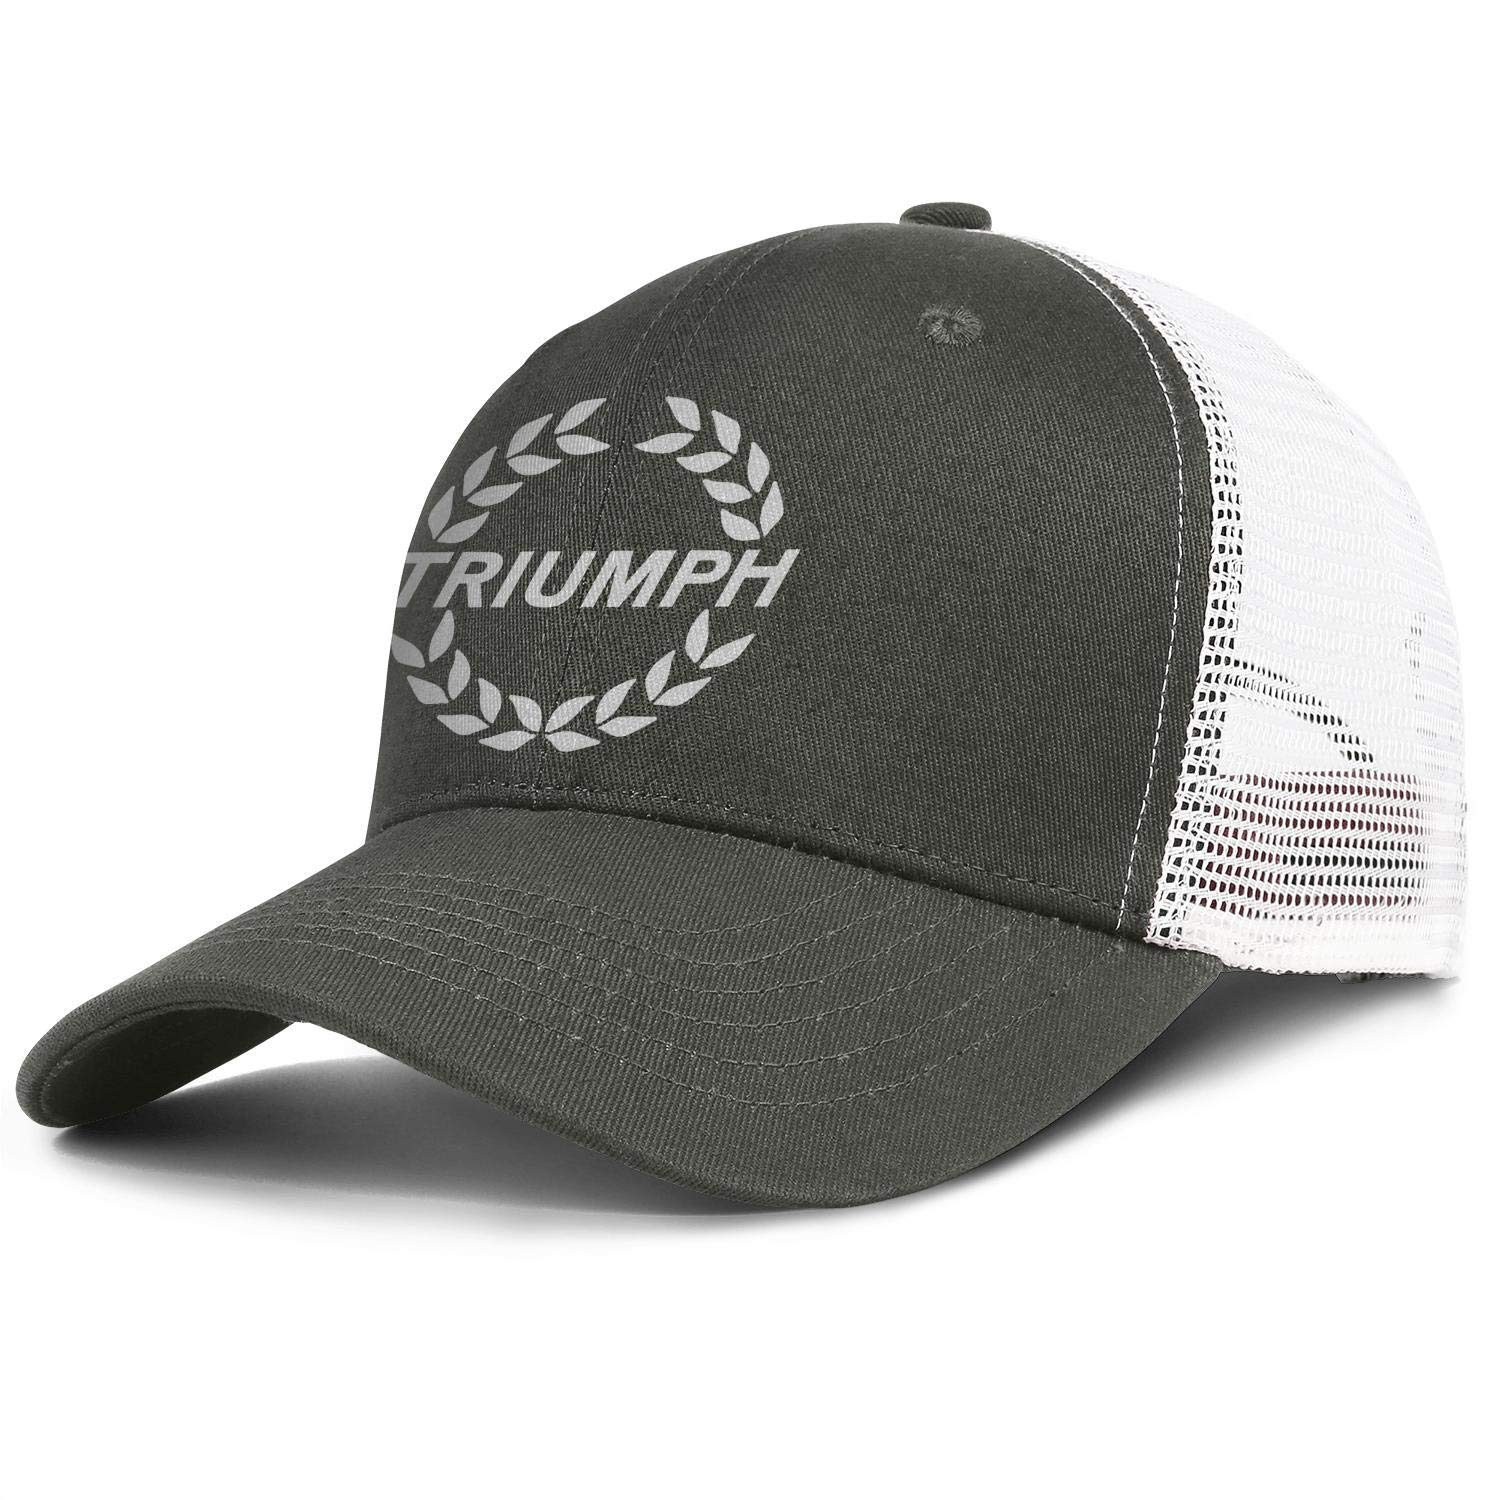 All Cotton Trucker Caps Triumph-Motorcycles-Logo Snapback Curved Mesh Hat